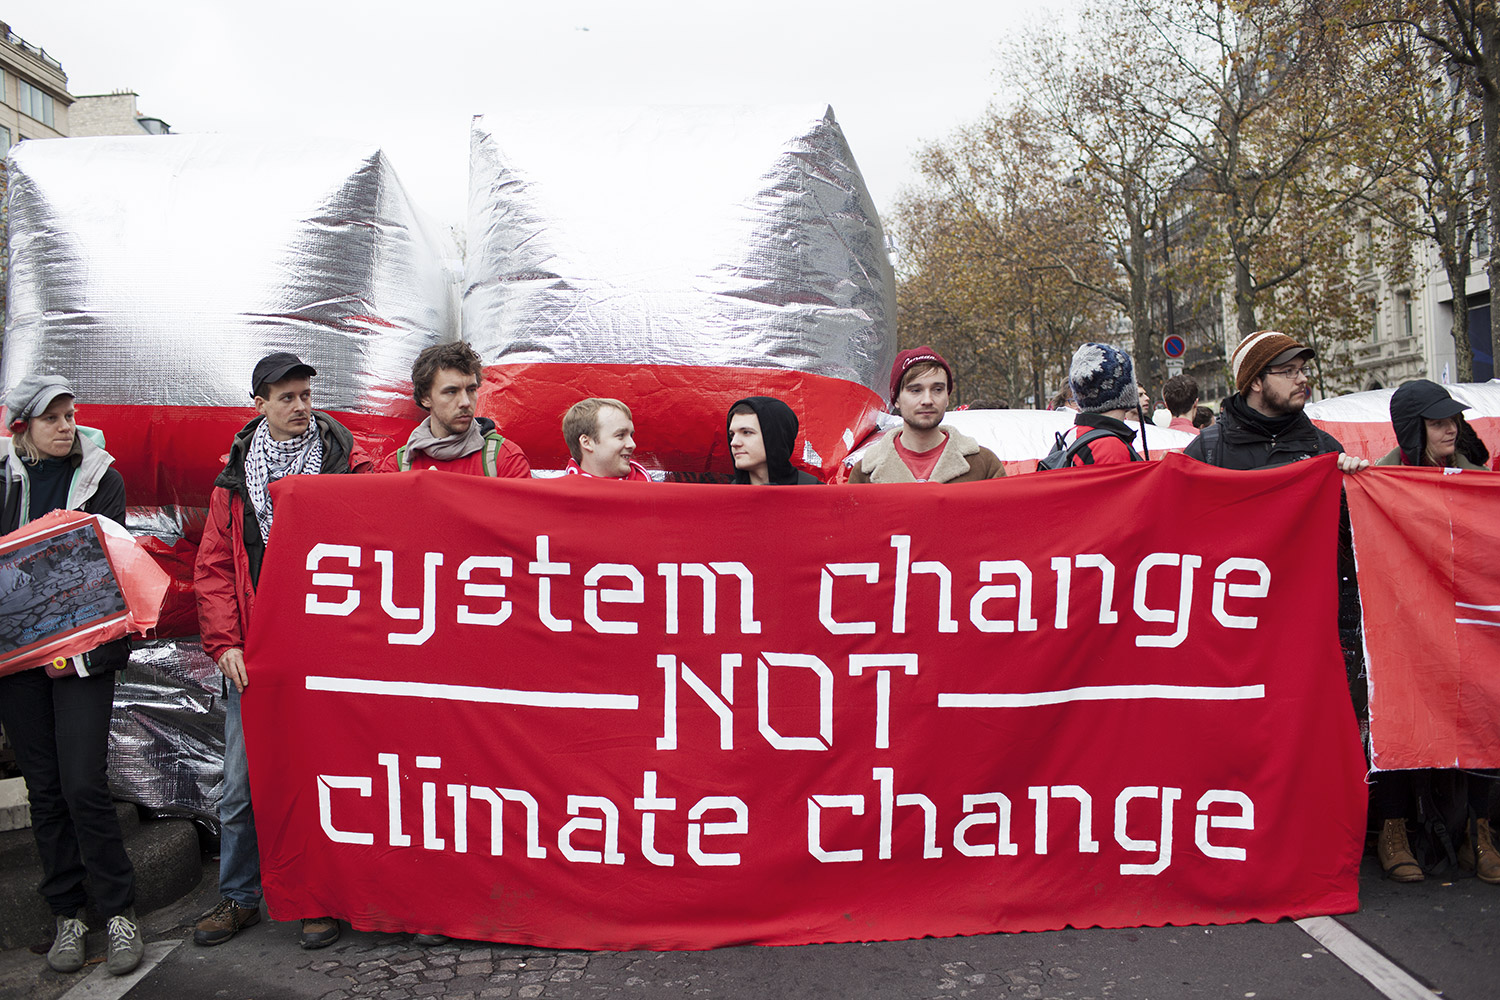 COP 21 climate change summit protest, Paris, France - 12 Dec 2015